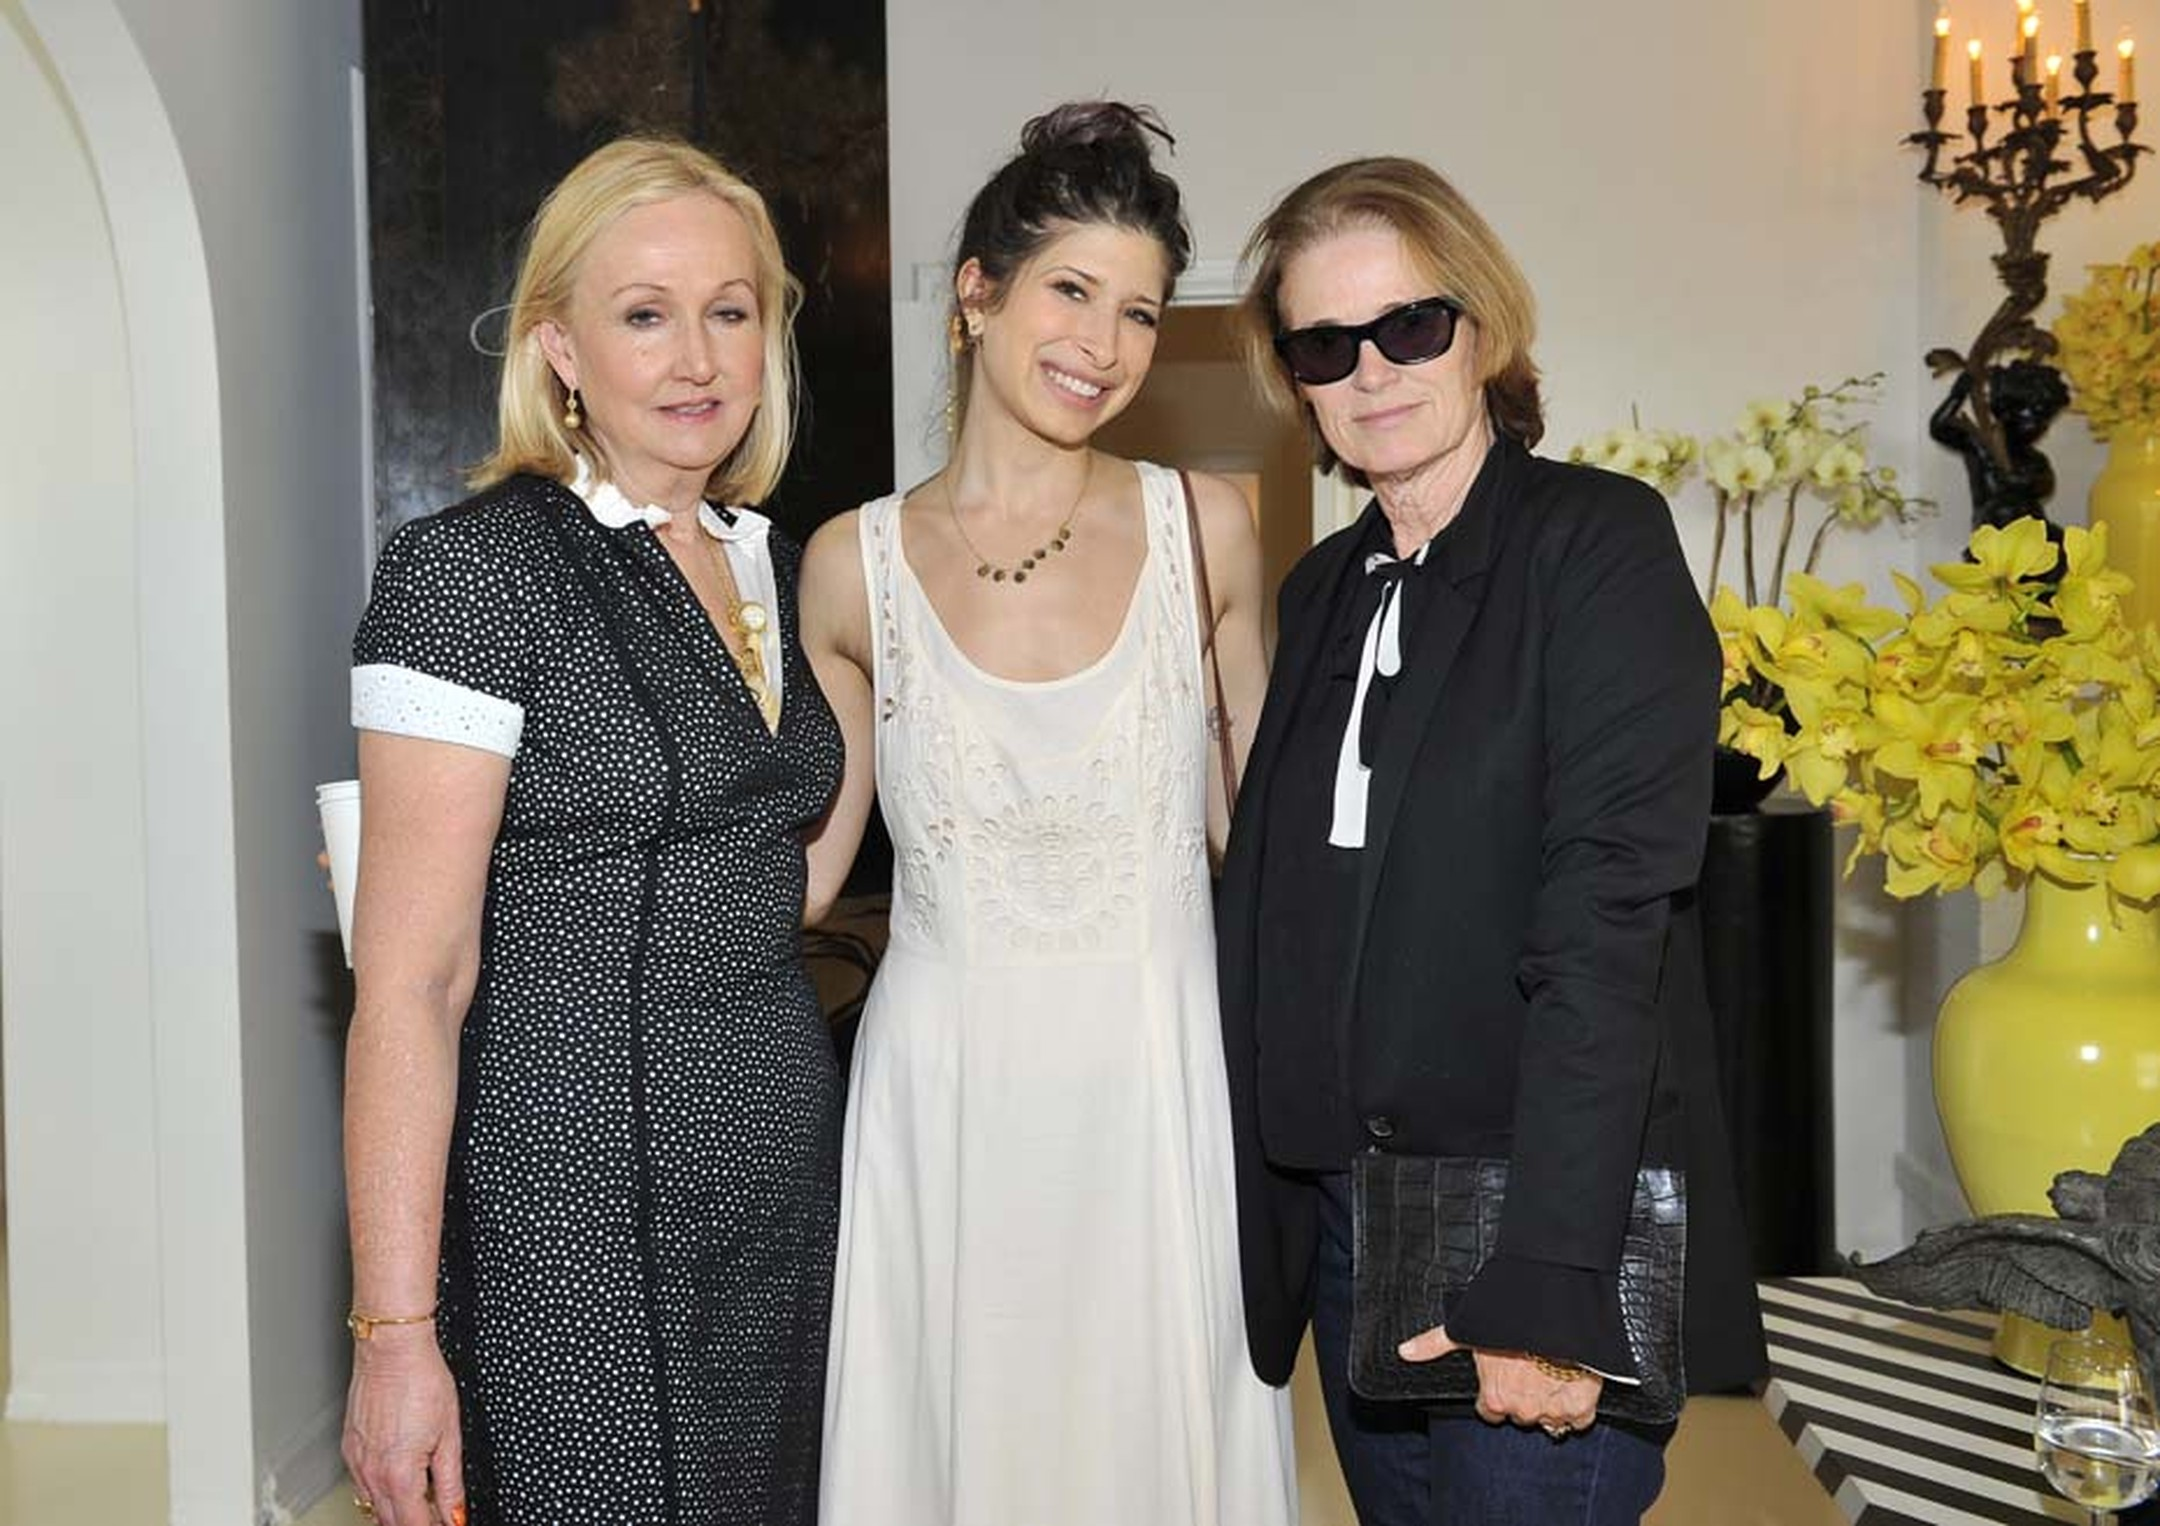 Pamela Love, centre, who last year won the prestigious CFDA Swarovski Accessory Design award, presented her 35-piece collection to magazine editors including Lisa Love, right, the West Coast editor of Vogue